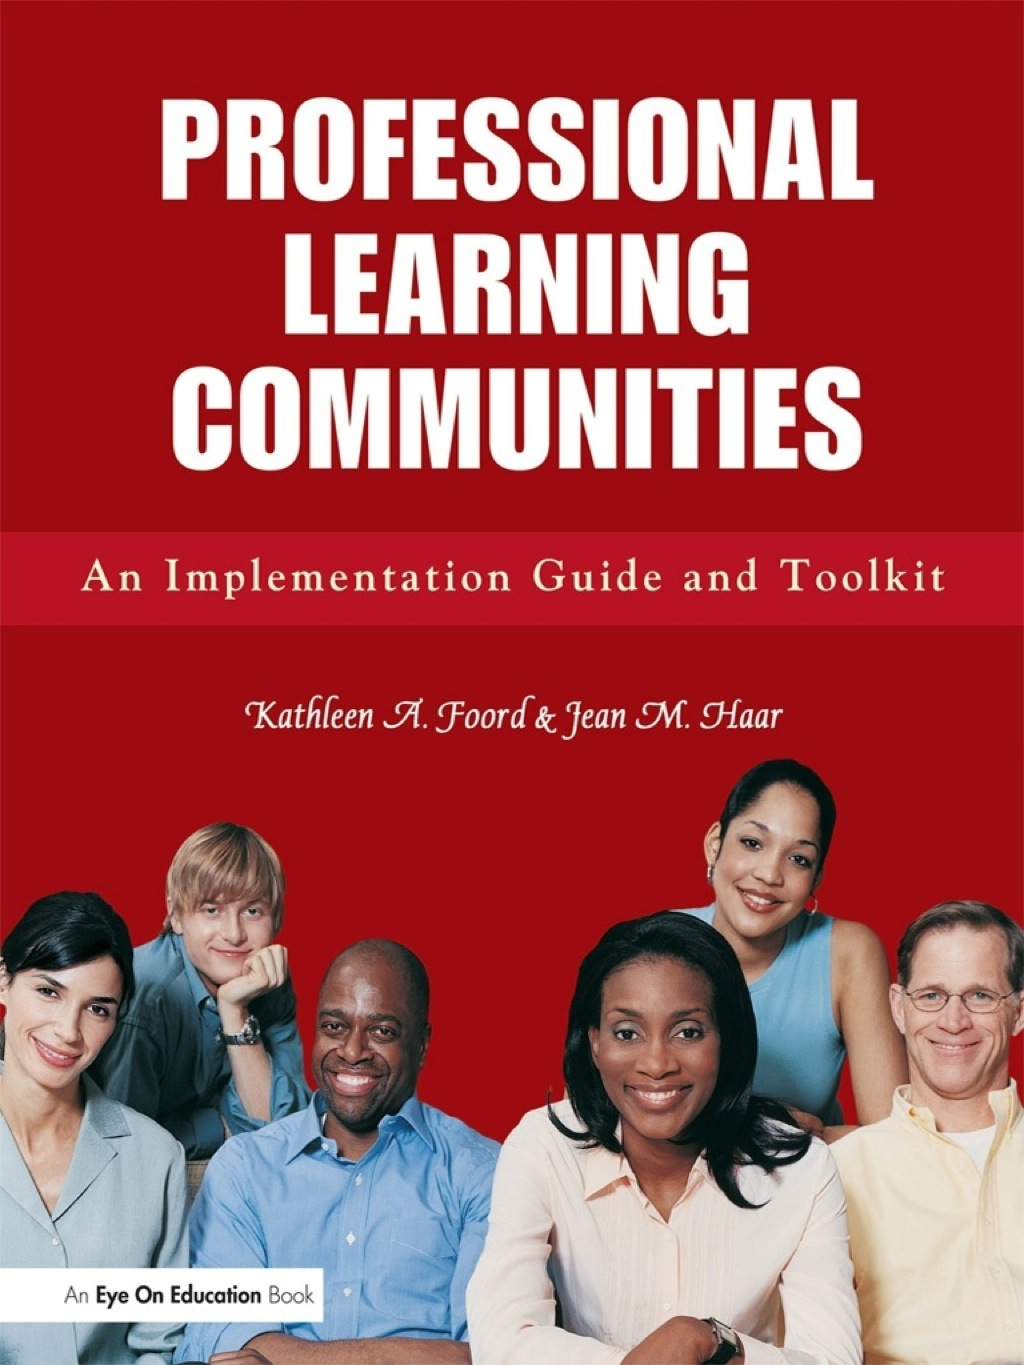 Professional Learning Communities (ebook) eBooks